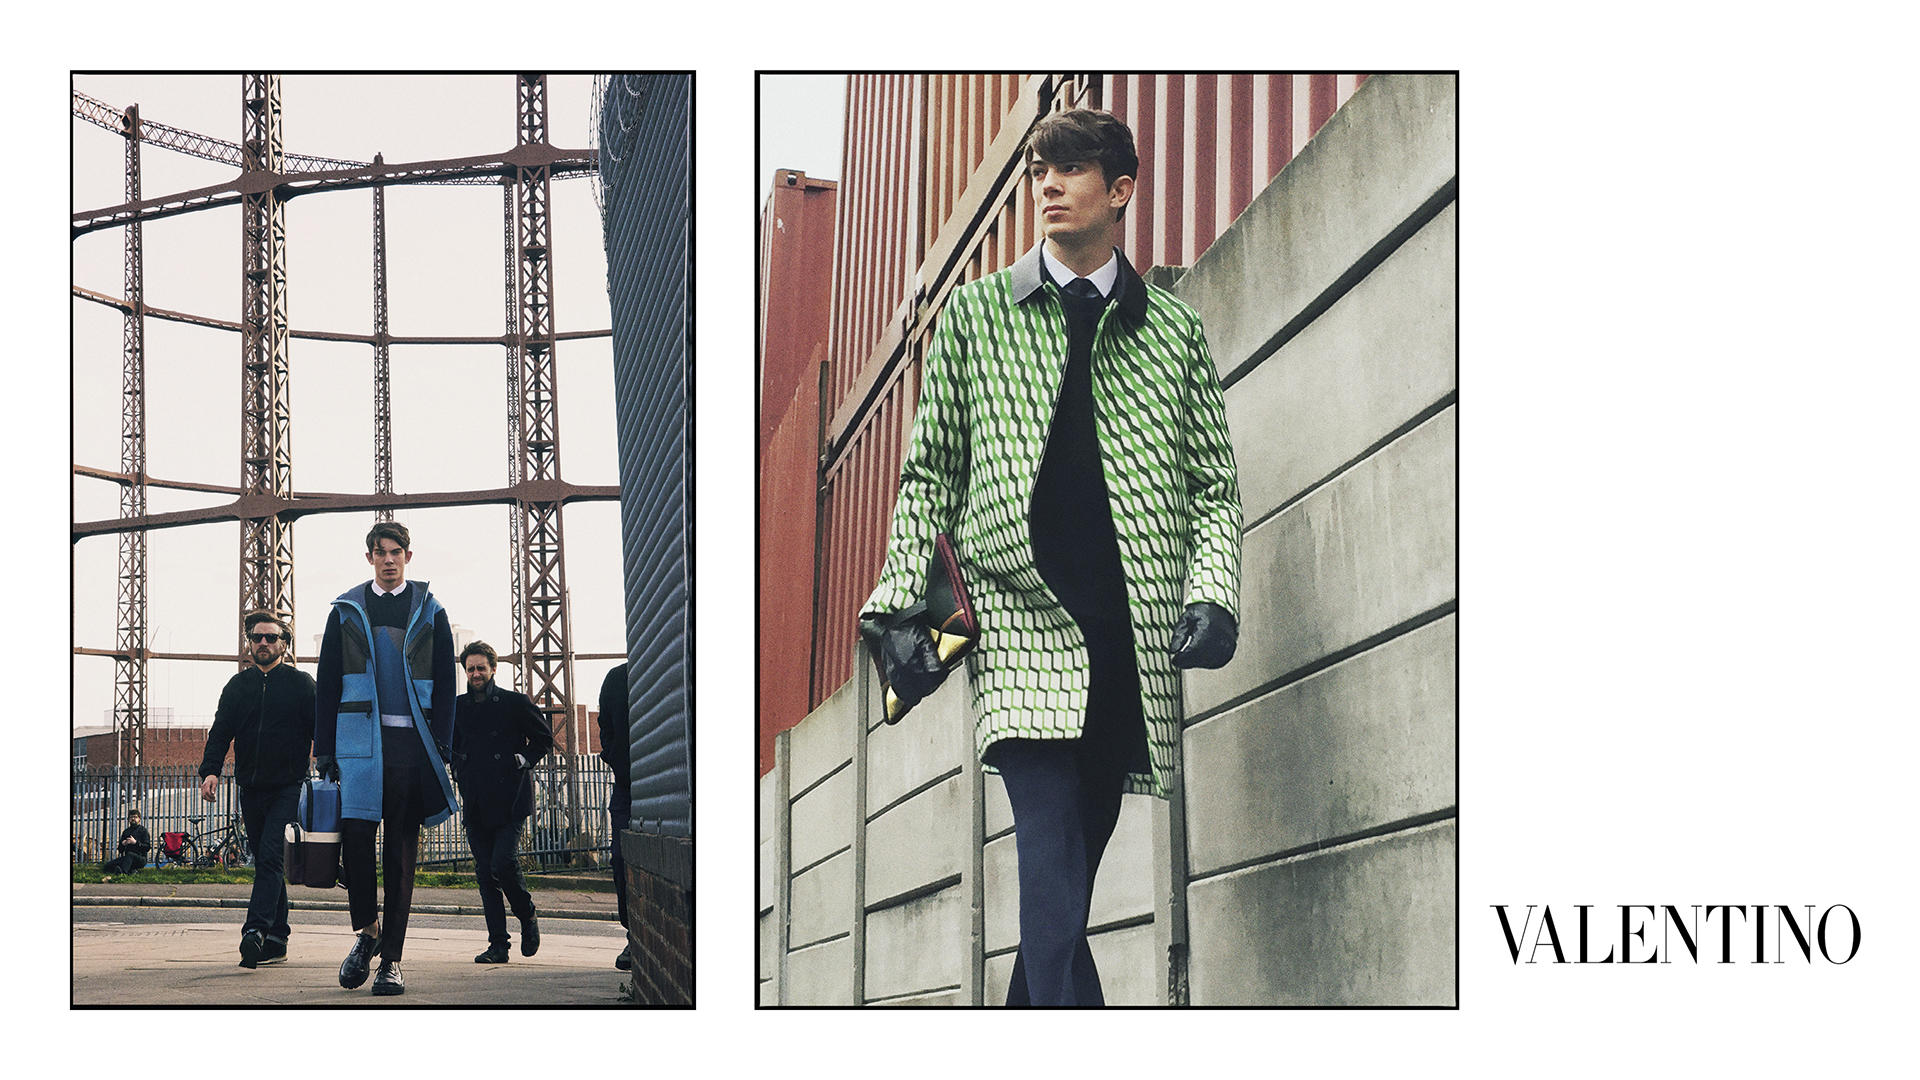 Valentino Fall/Winter 2015 Men's Campaign Shot in East End, London